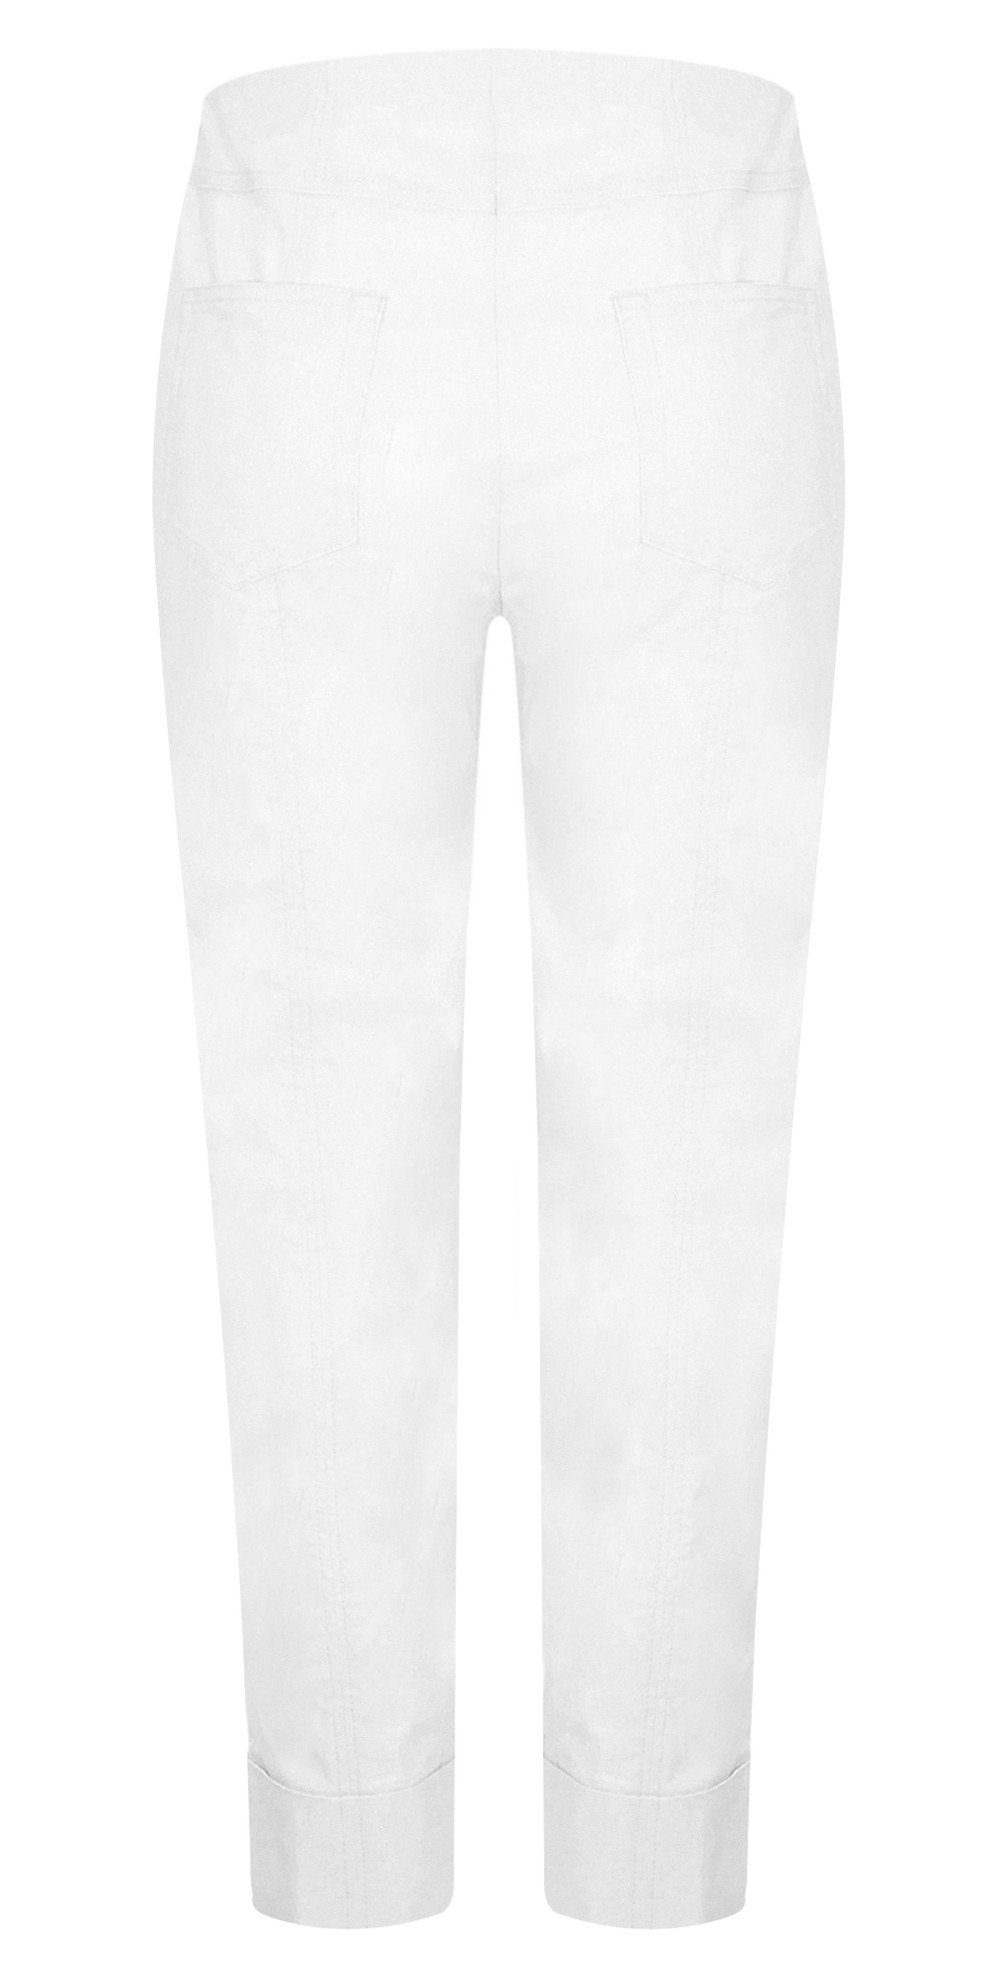 Bella 09 White Ankle Length 7/8 Cuff Trouser main image